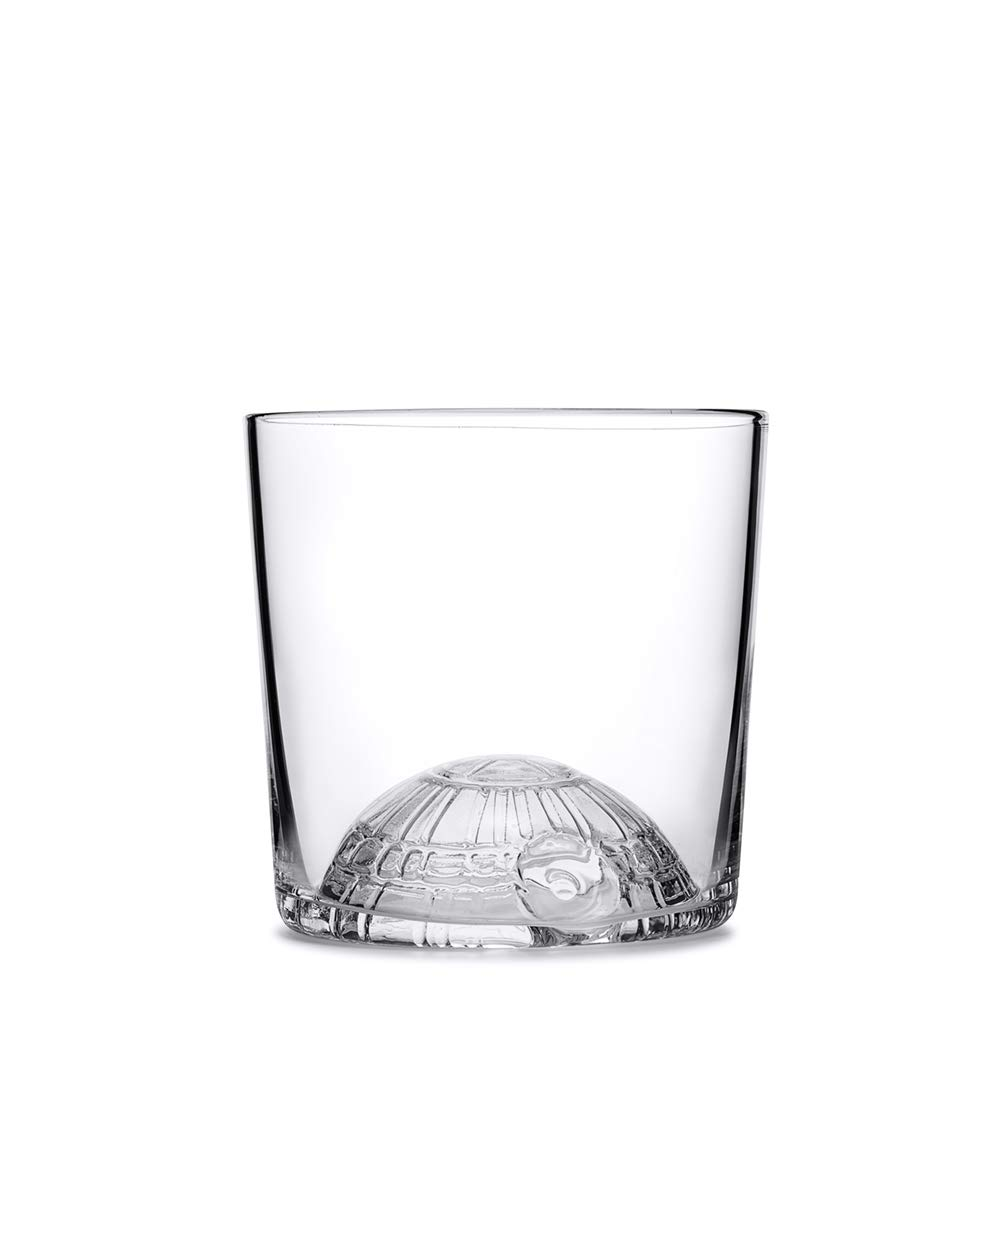 W&P WPSW-DSGLASS Limited Star Wars Collection Death Star Juice Glass, Whiskey, Cocktail, Tumbler Glass, Set of 2